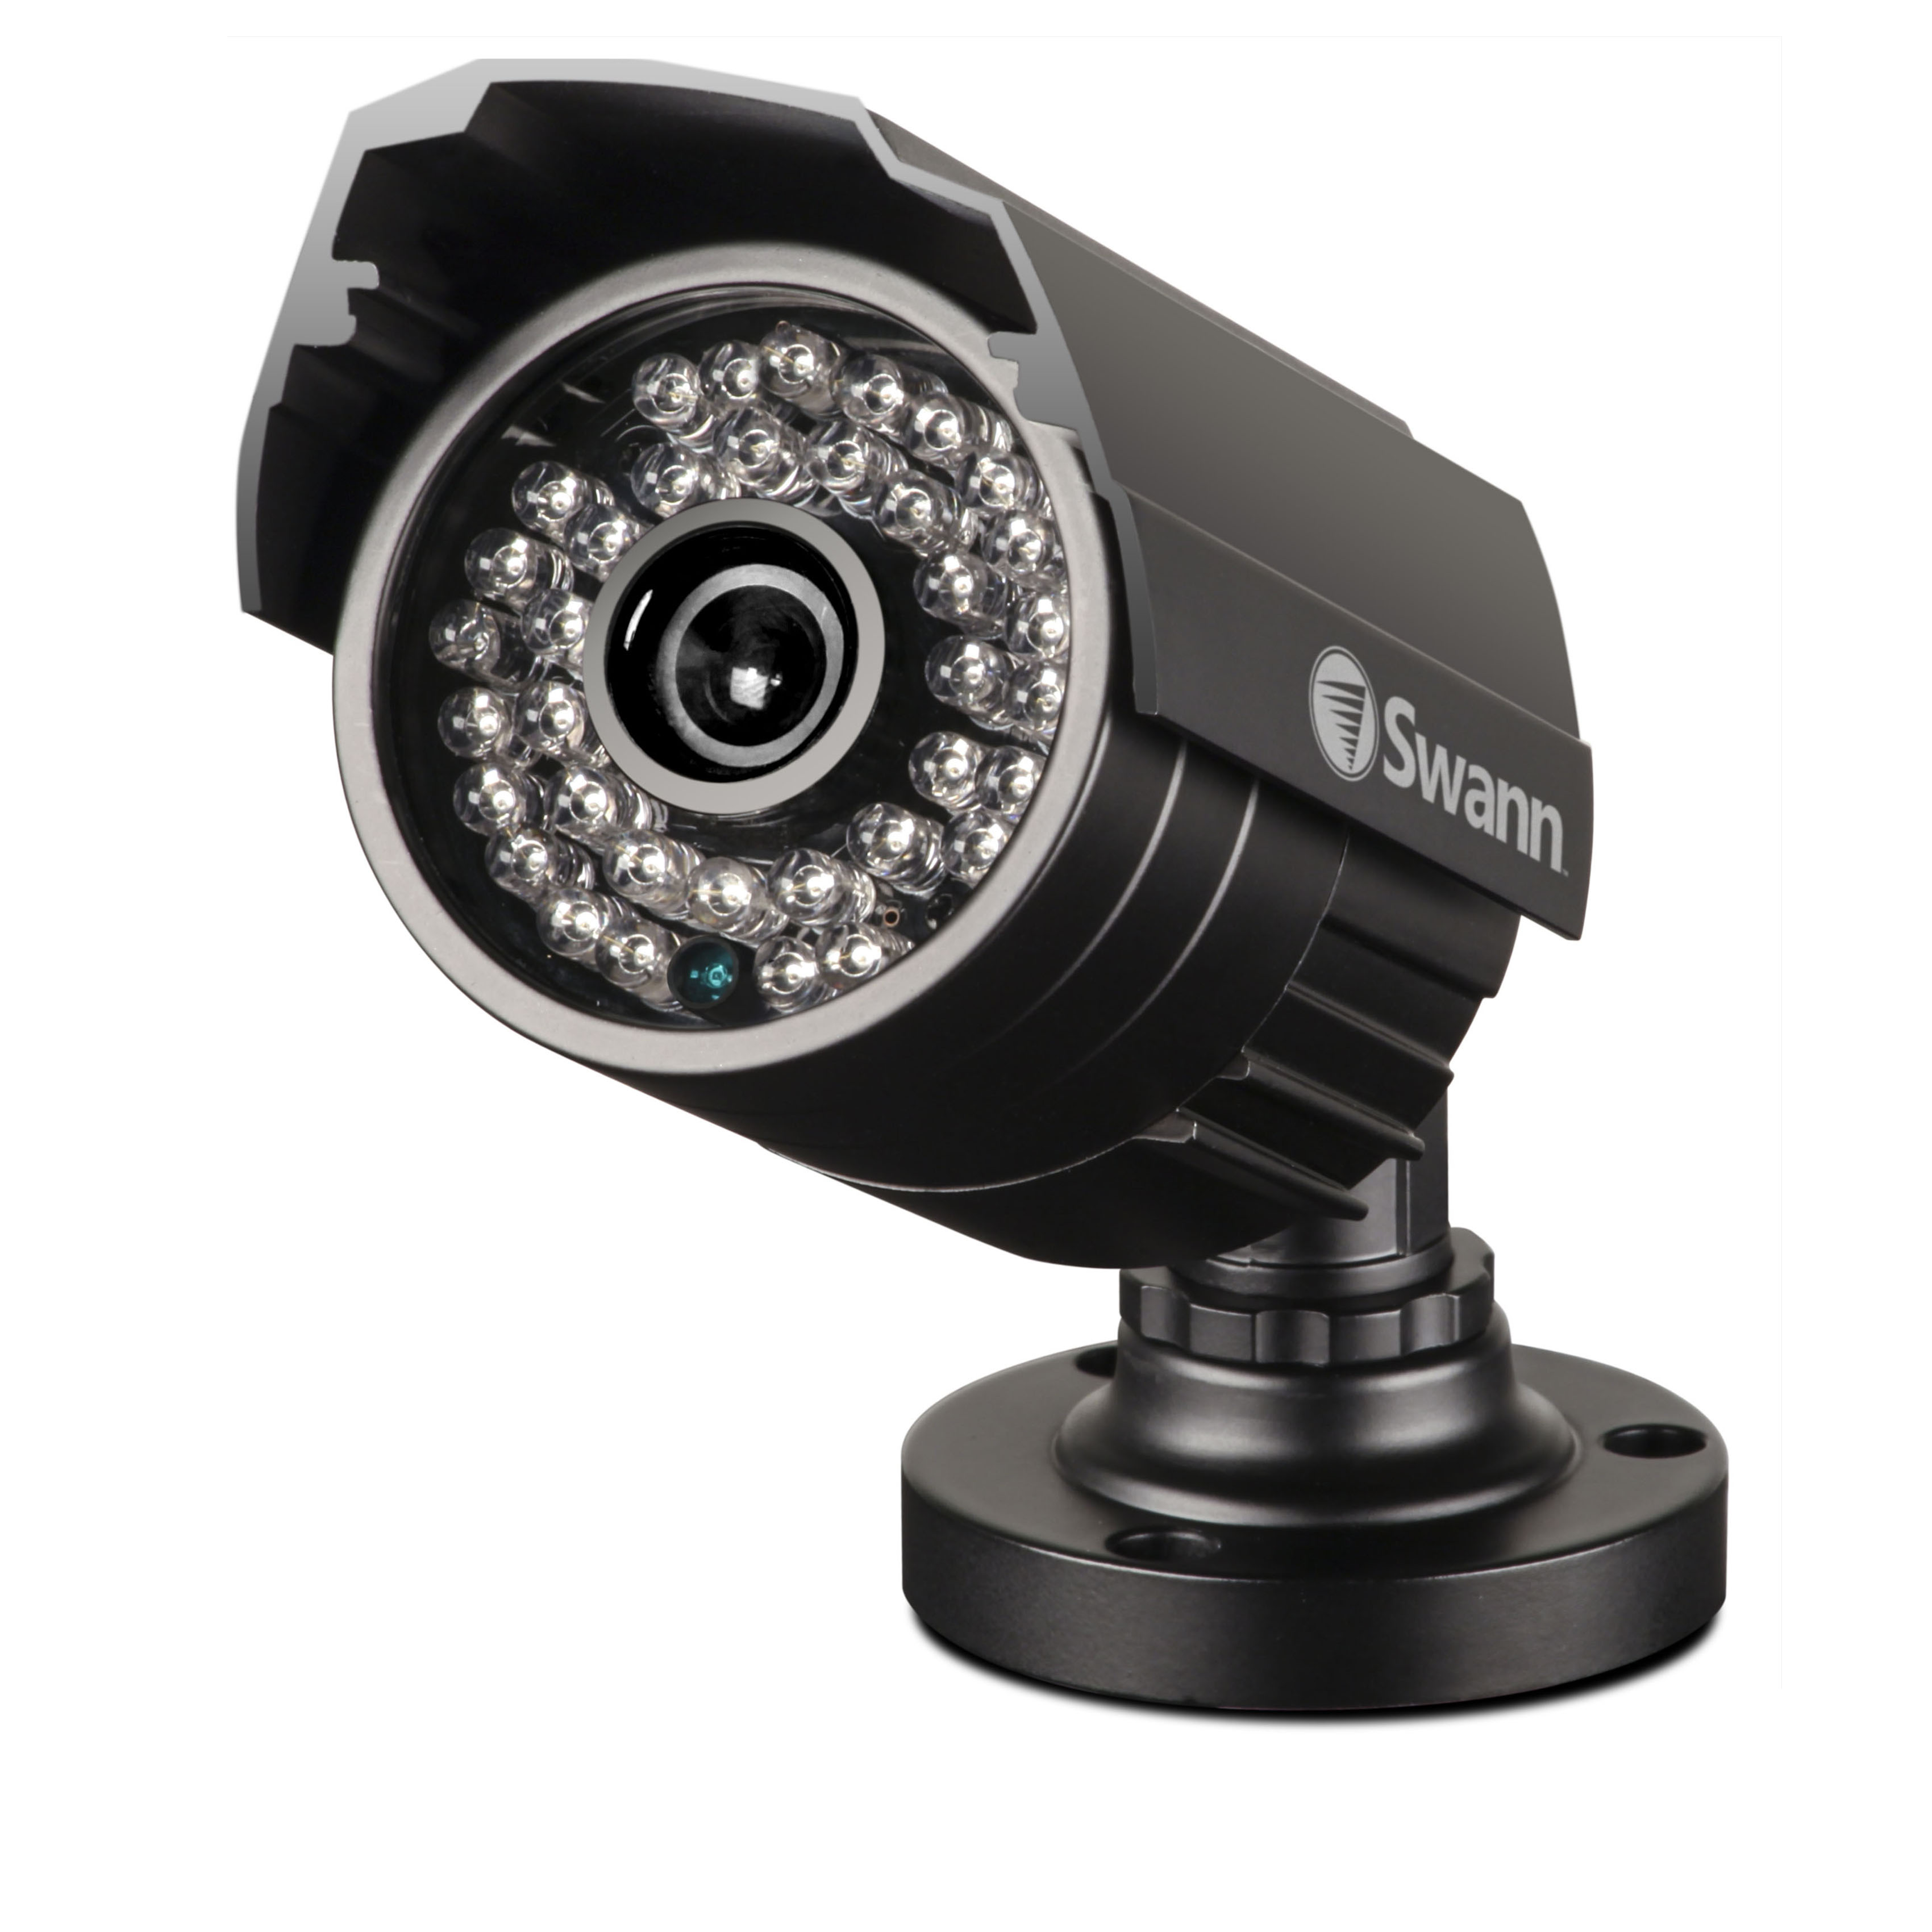 Swann outdoor security camera 720tvl with night vision - Camera de surveillance factice ...